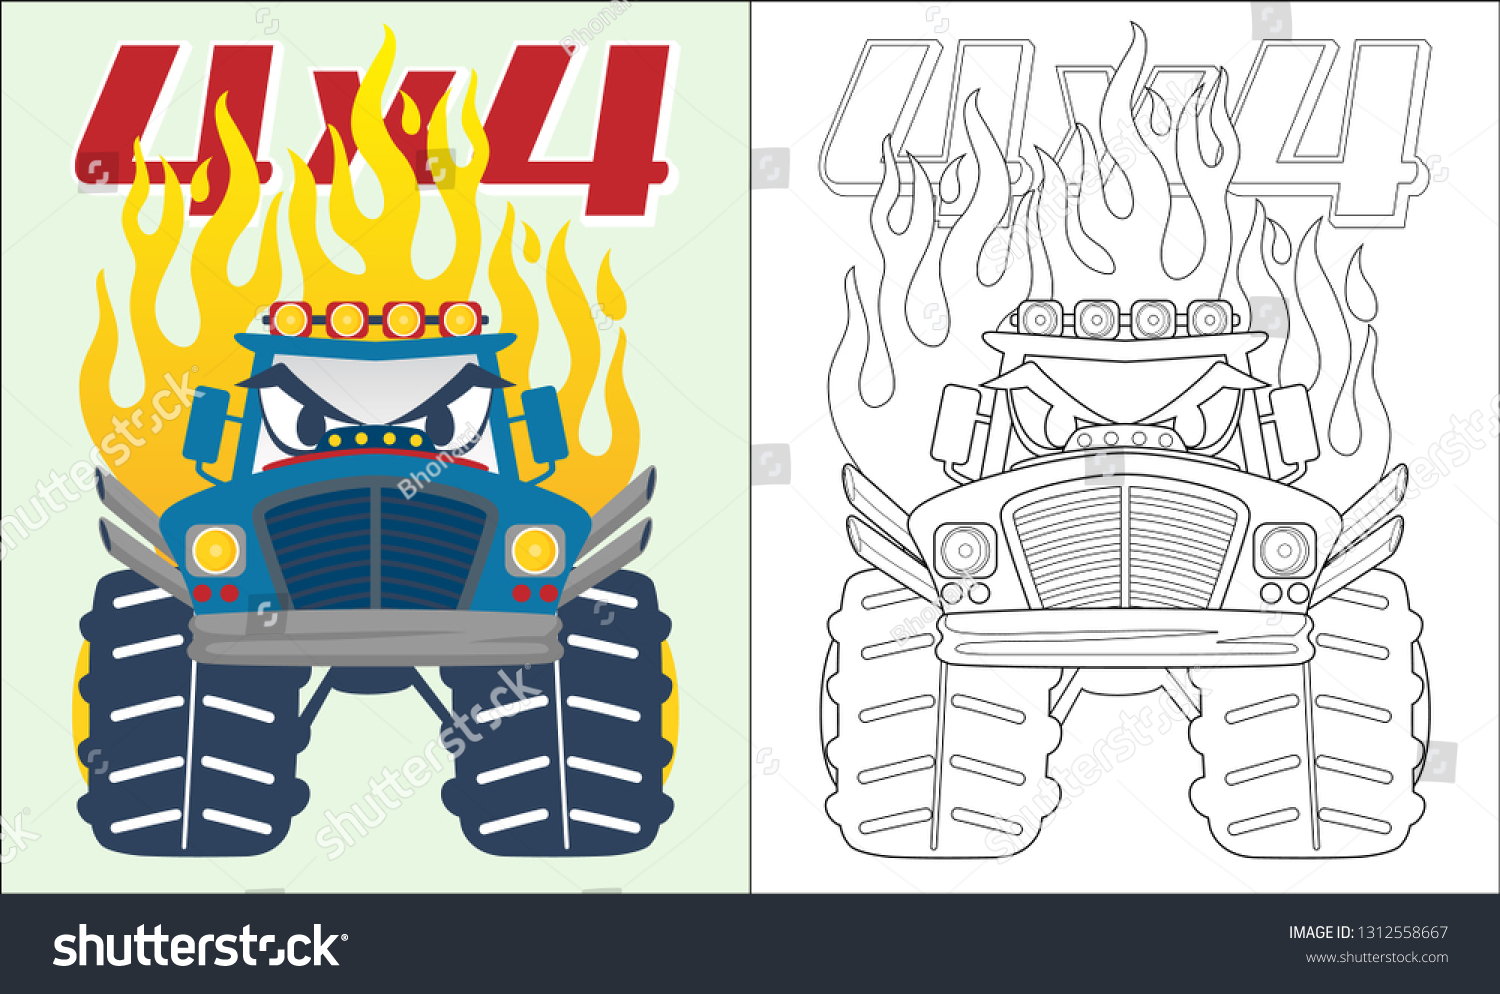 Monster Truck Coloring Pages for Kids | Coloring Books for Kids ... | 994x1500